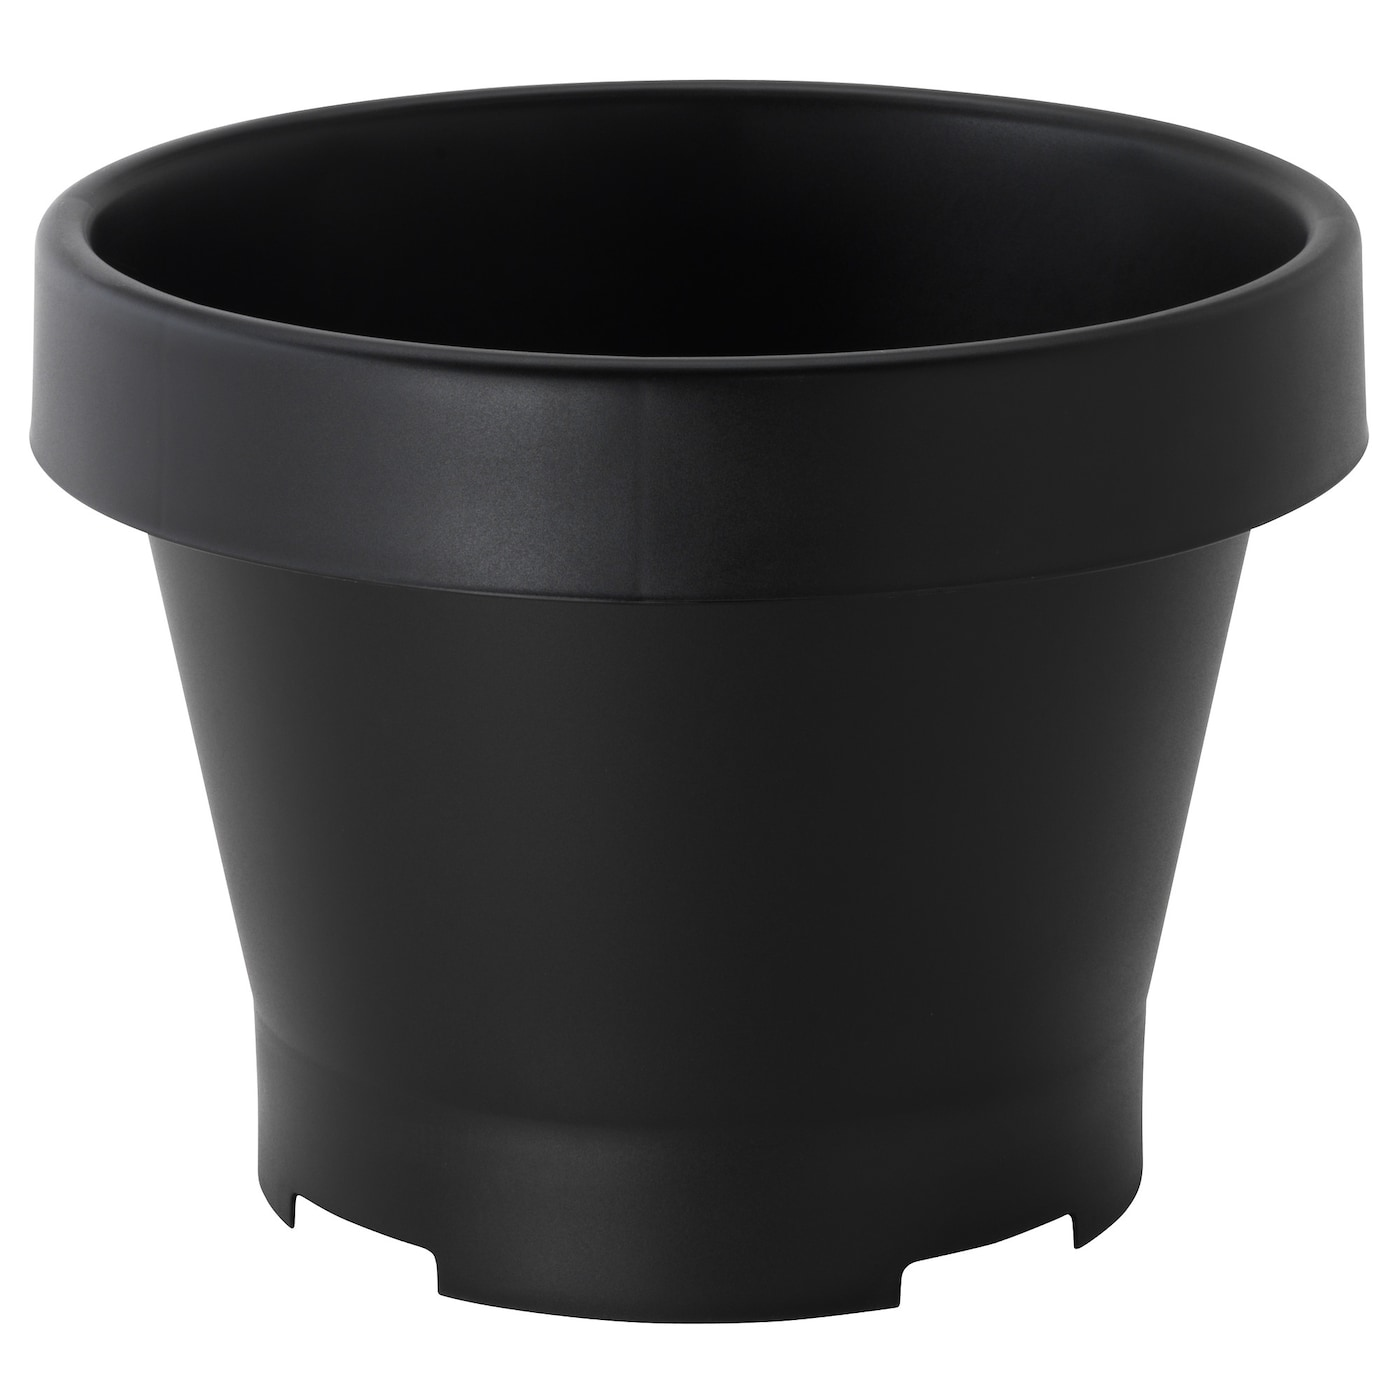 Gr va plant pot in outdoor black 42x35 cm ikea for Black planters ikea